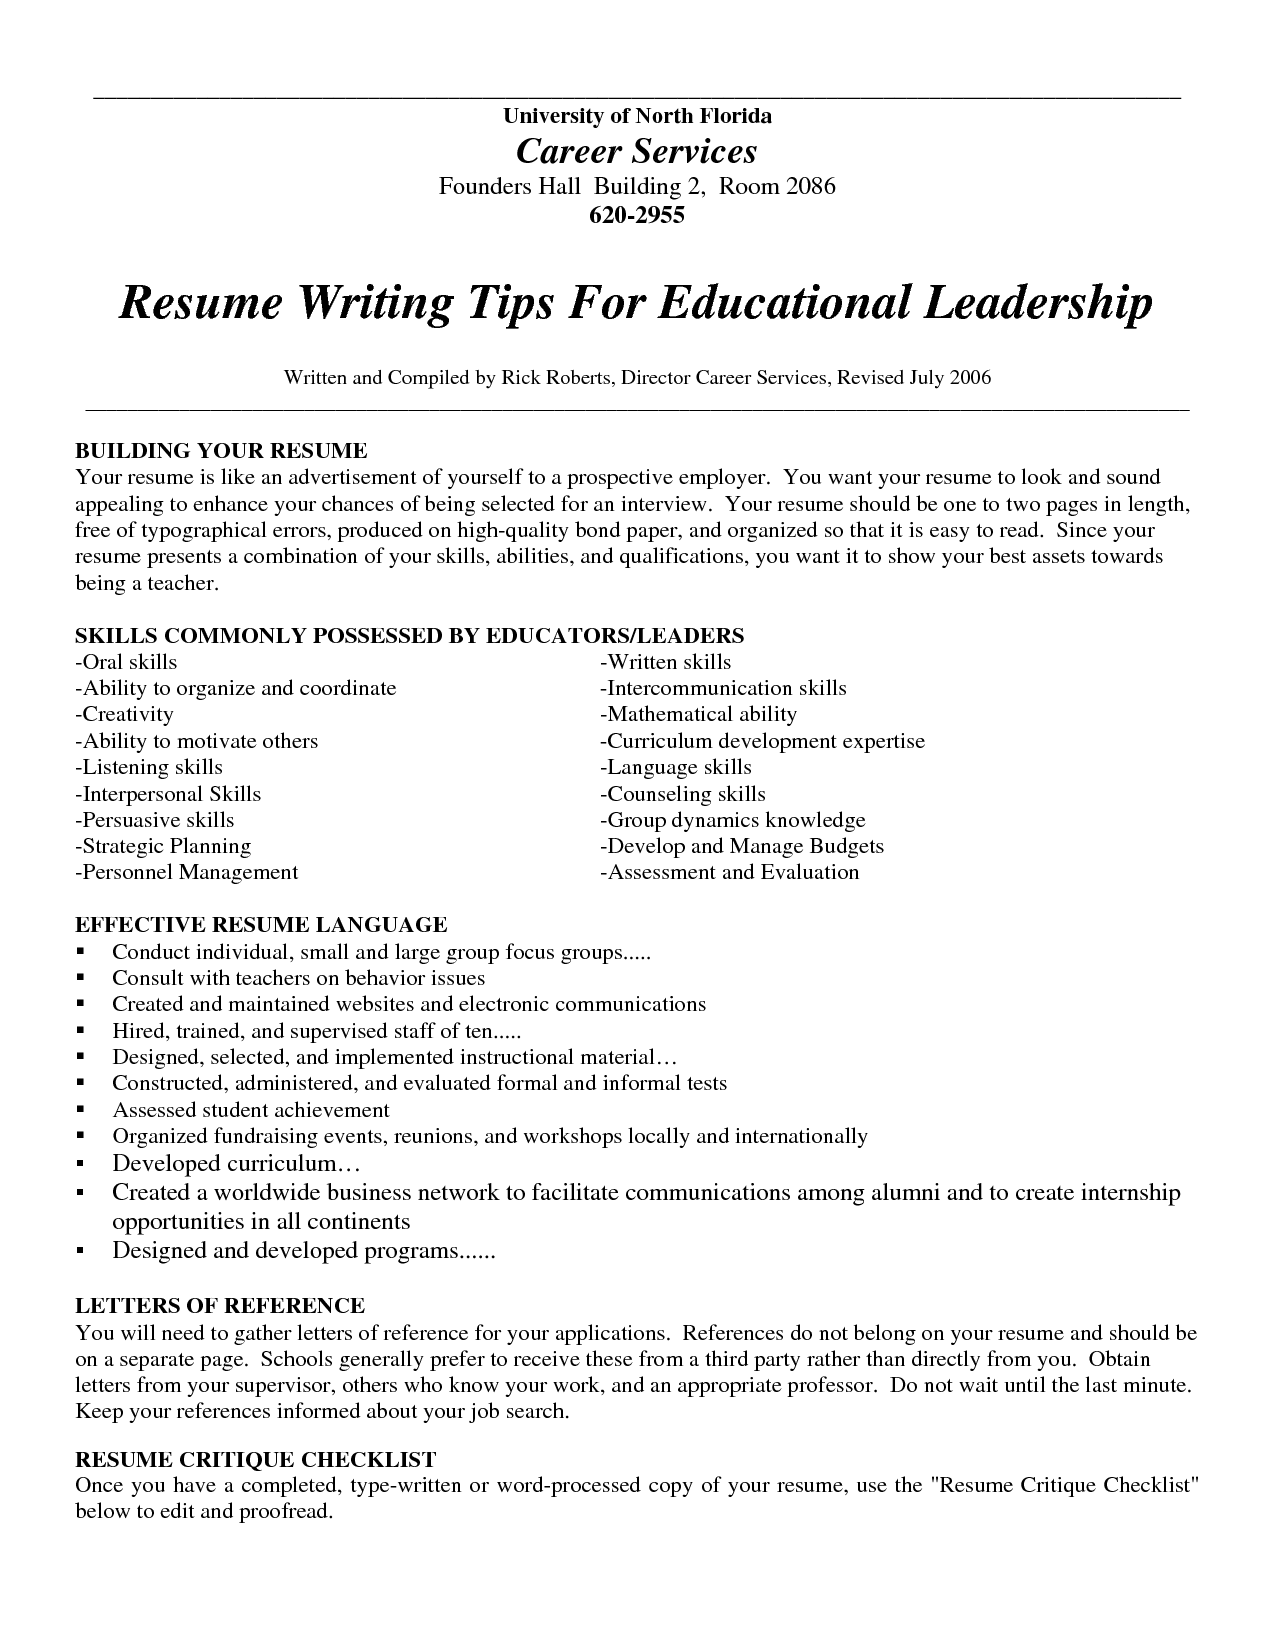 100 free resume writer free resume writing services the. Resume Example. Resume CV Cover Letter